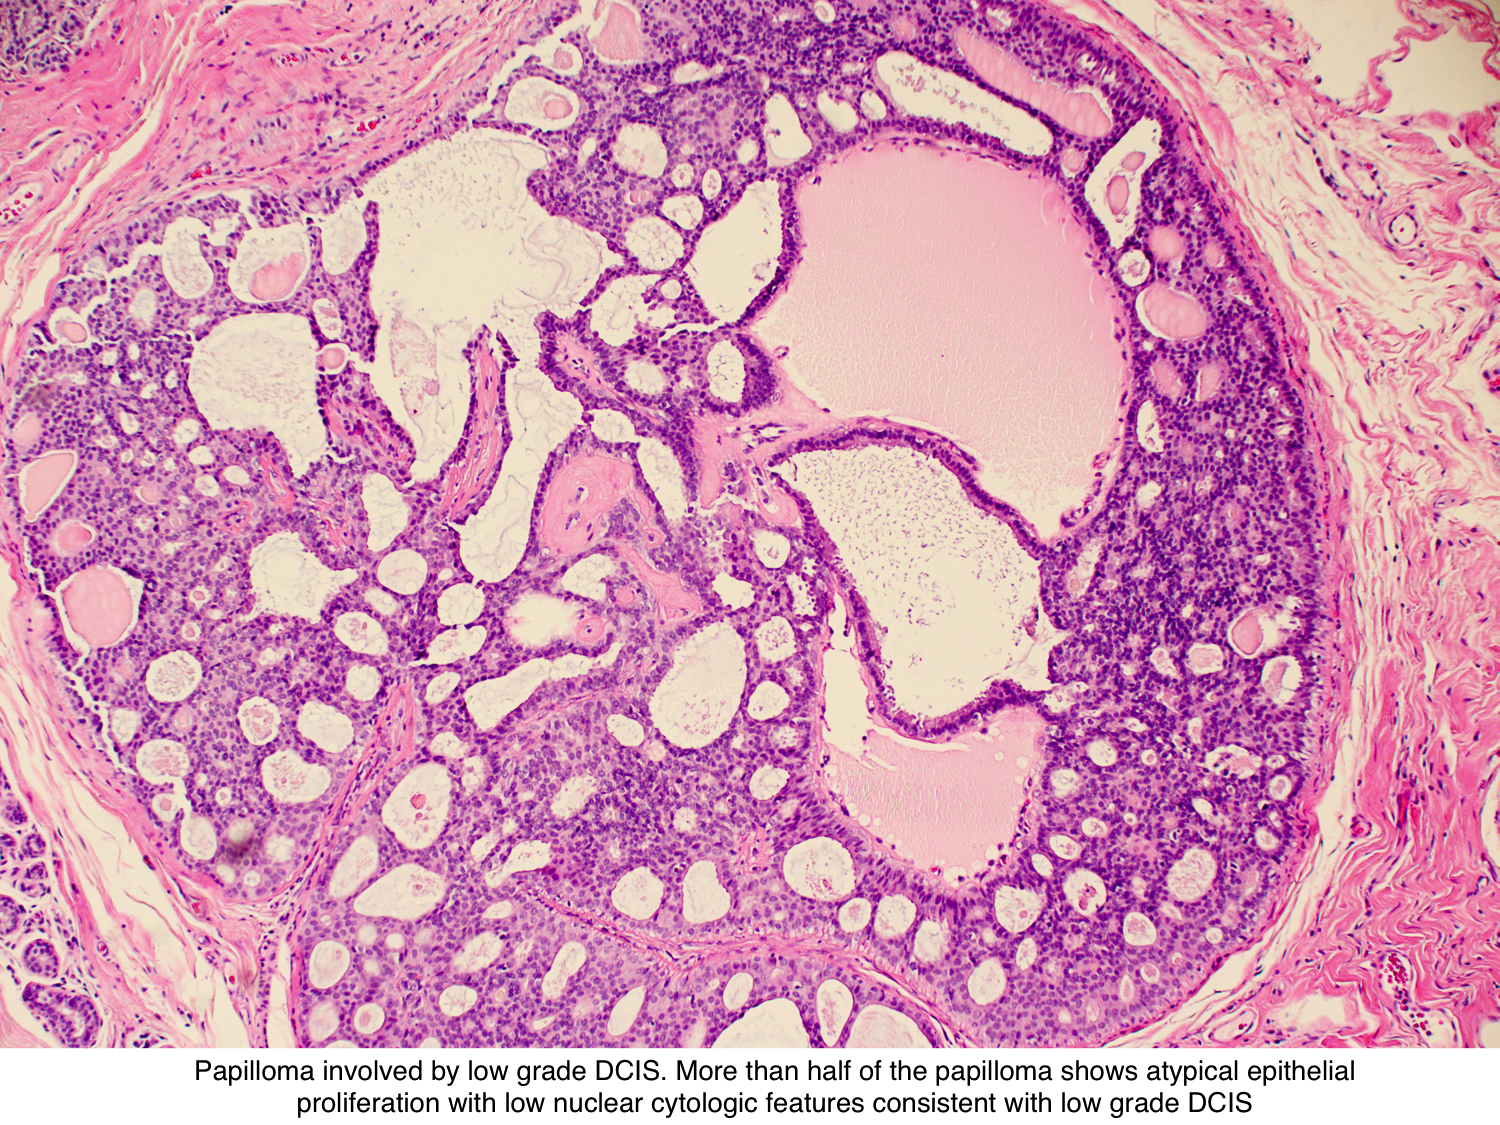 intraductal papilloma and dcis